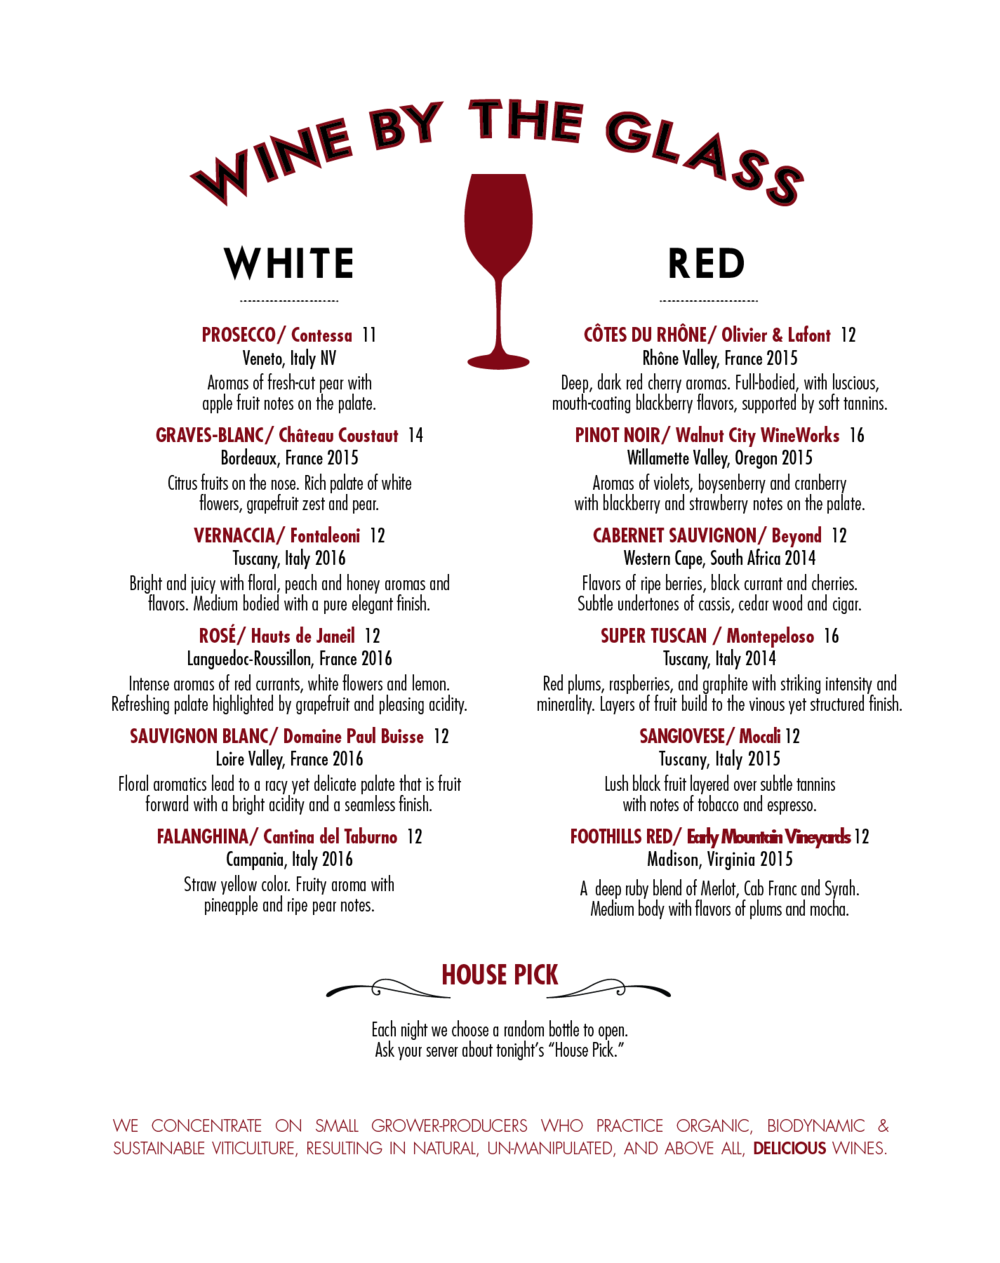 MENU BY THE GLASS-01.png